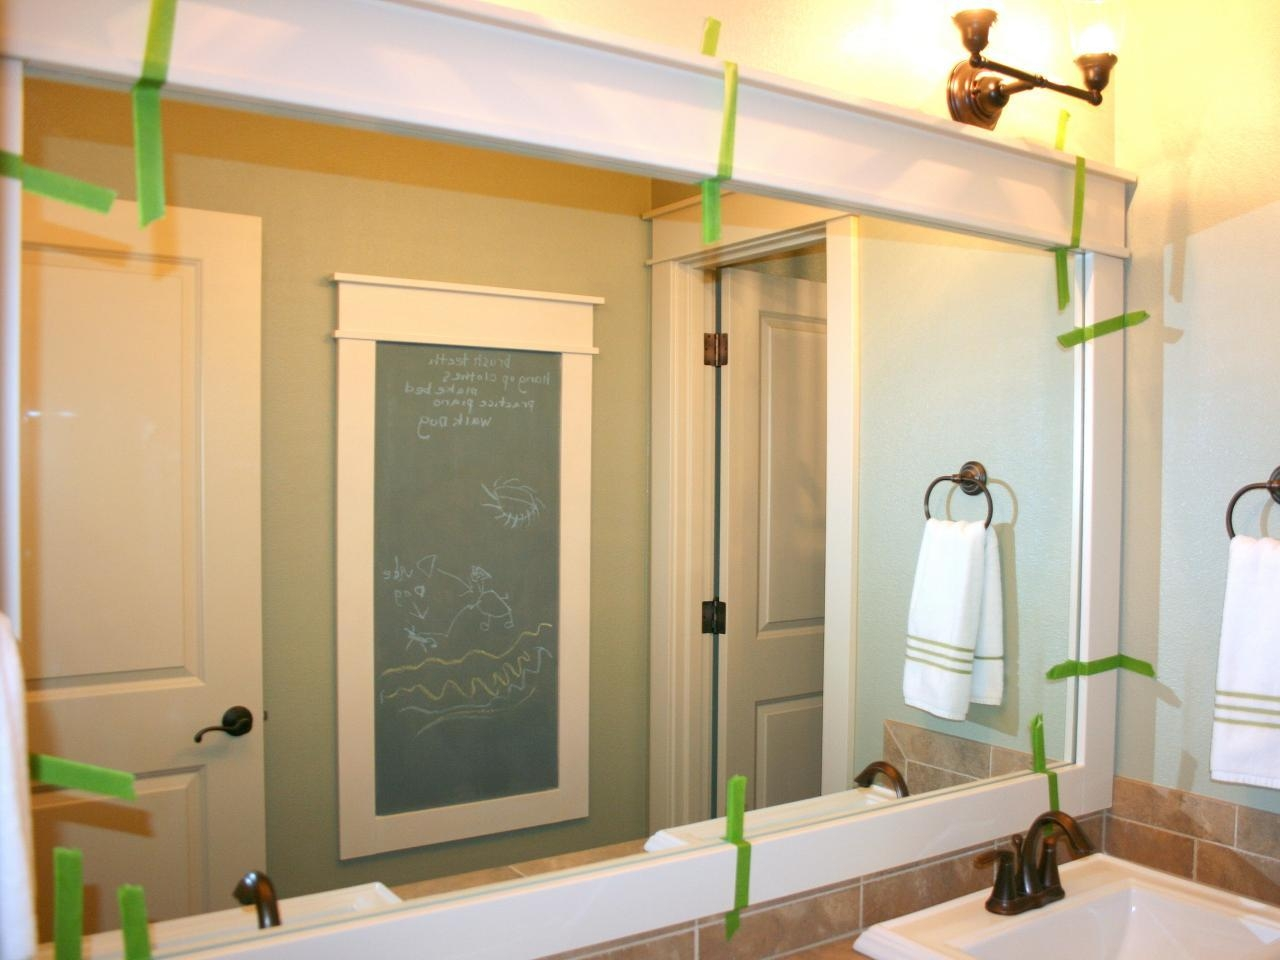 How To Frame A Mirror | Hgtv With Wall Mirrors For Bathrooms (Image 12 of 20)